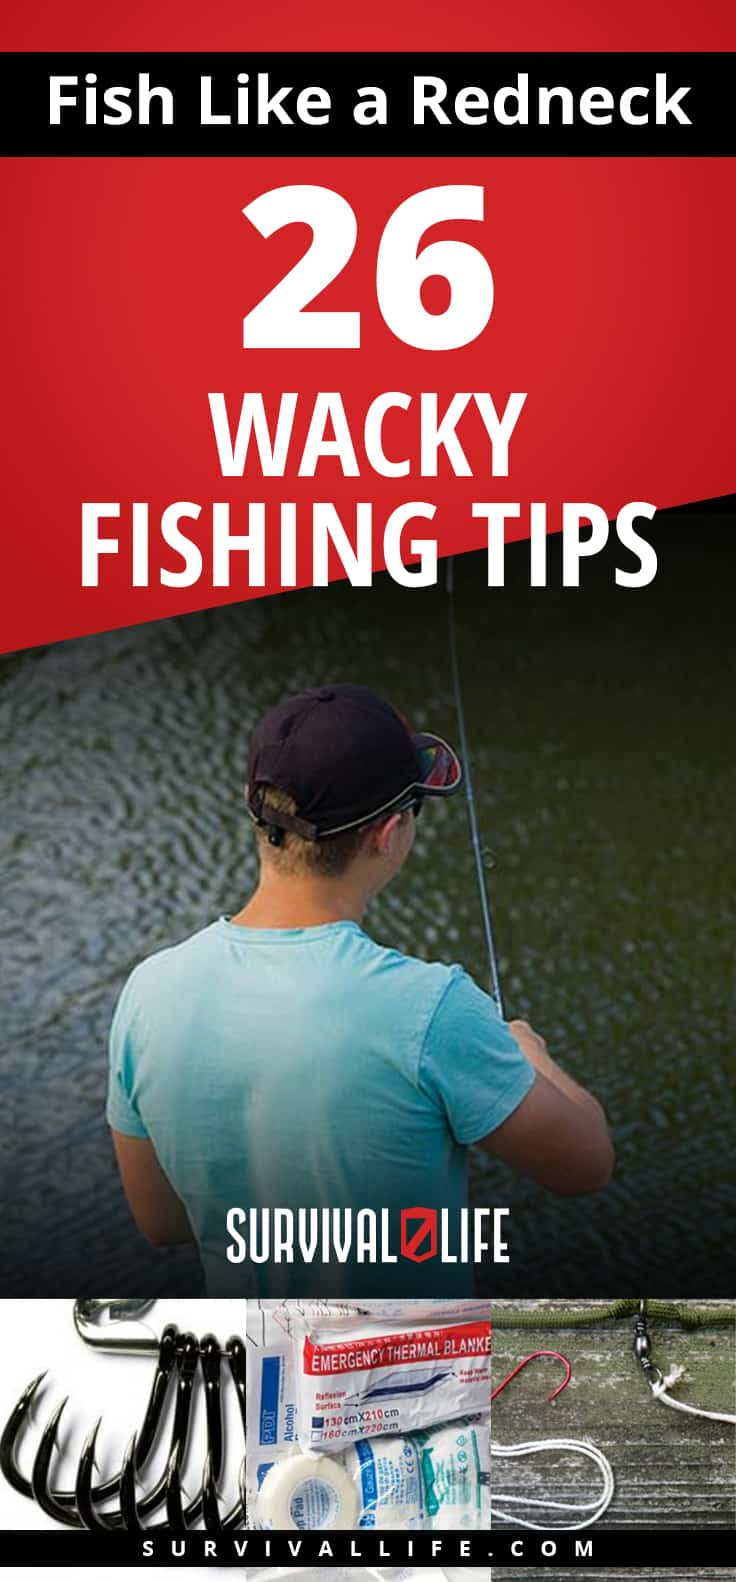 Pinterest Placard | Fish Like a Redneck 26 Wacky Fishing Tips